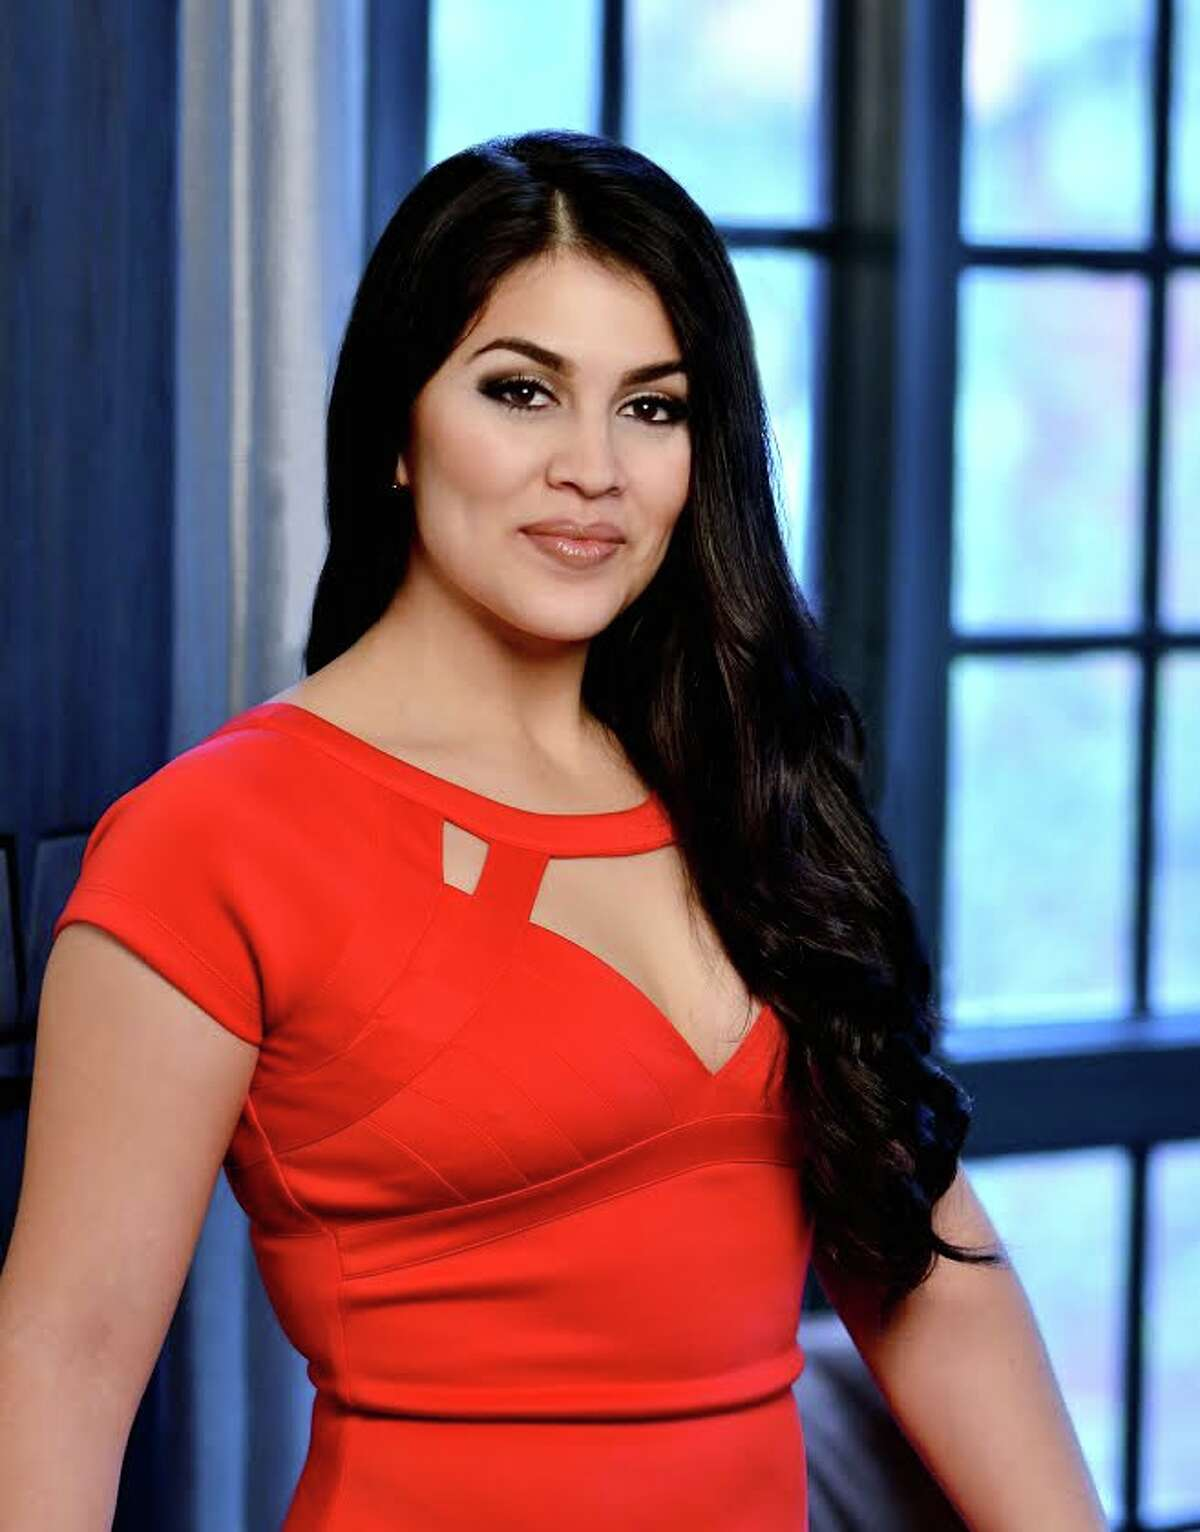 Alanna Sarabia, former S.A. lifestyle TV host, said the Dallas shootings hit close to home in more ways than one. They happened close to where she now lives in Dallas; she helped bring the news to viewers via next-day updates, and her own boyfriend is a police officer.